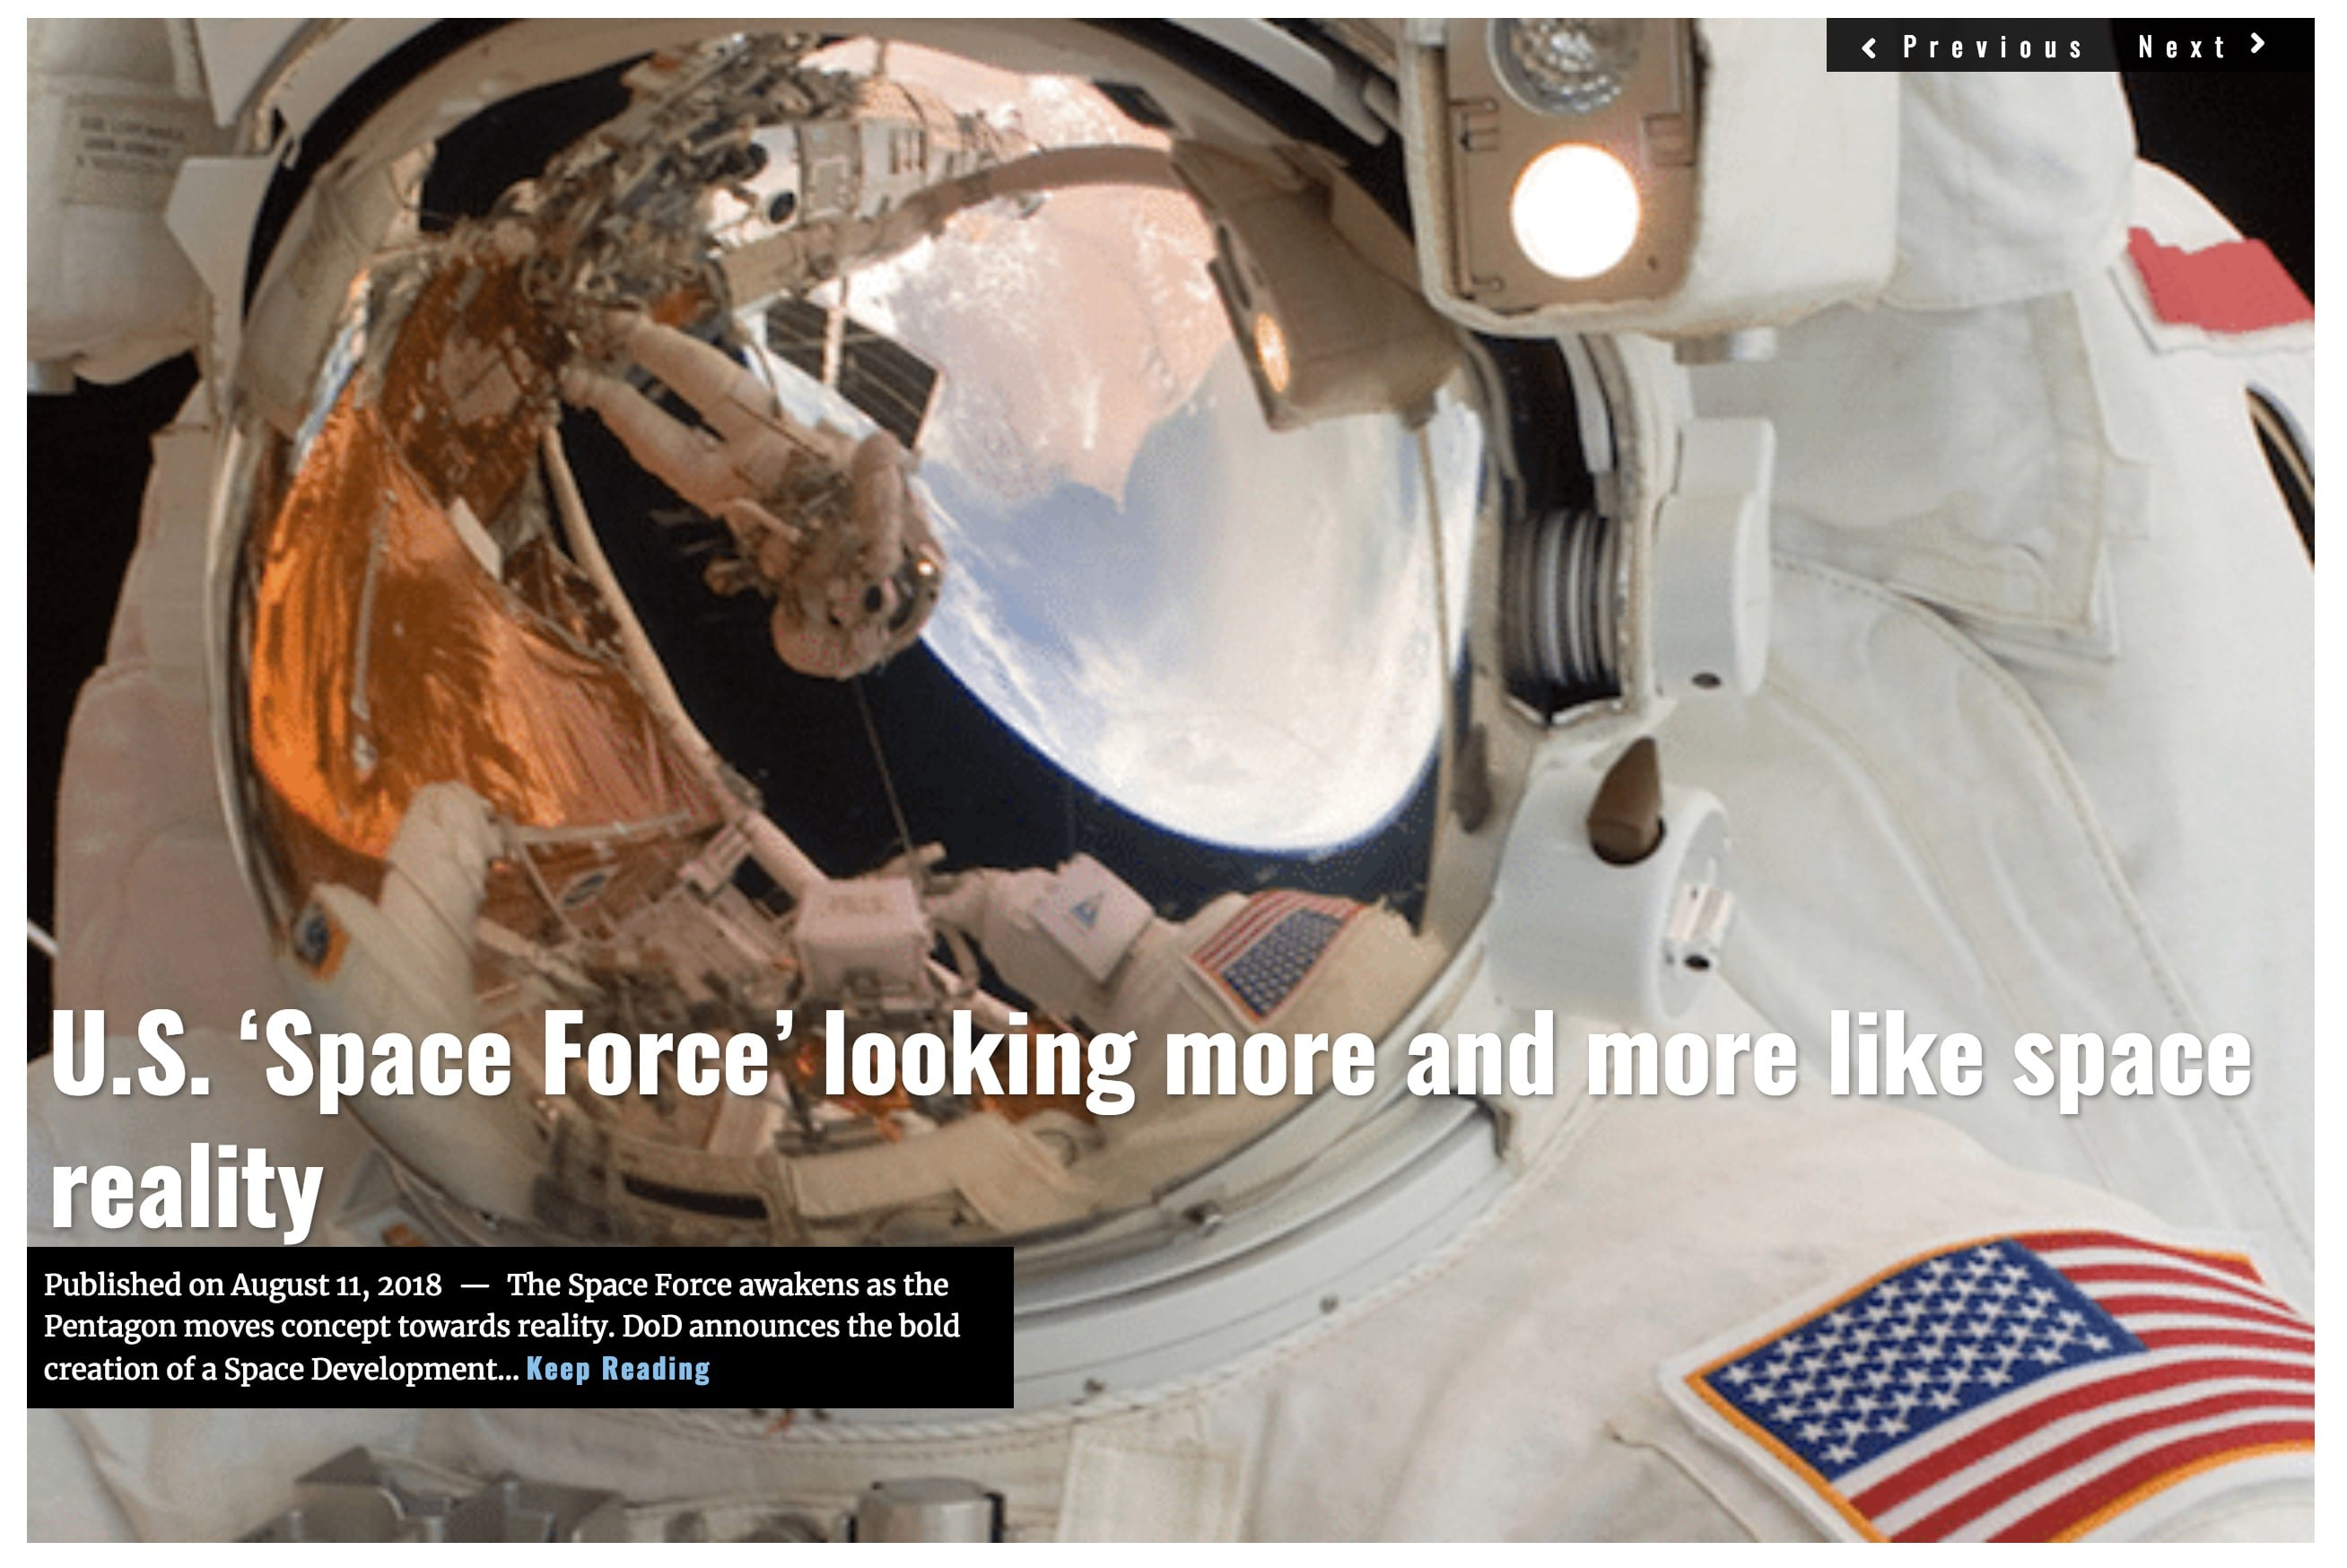 Image Lima Charlie News Headline Space Force M.Korzen AUG 10 2018